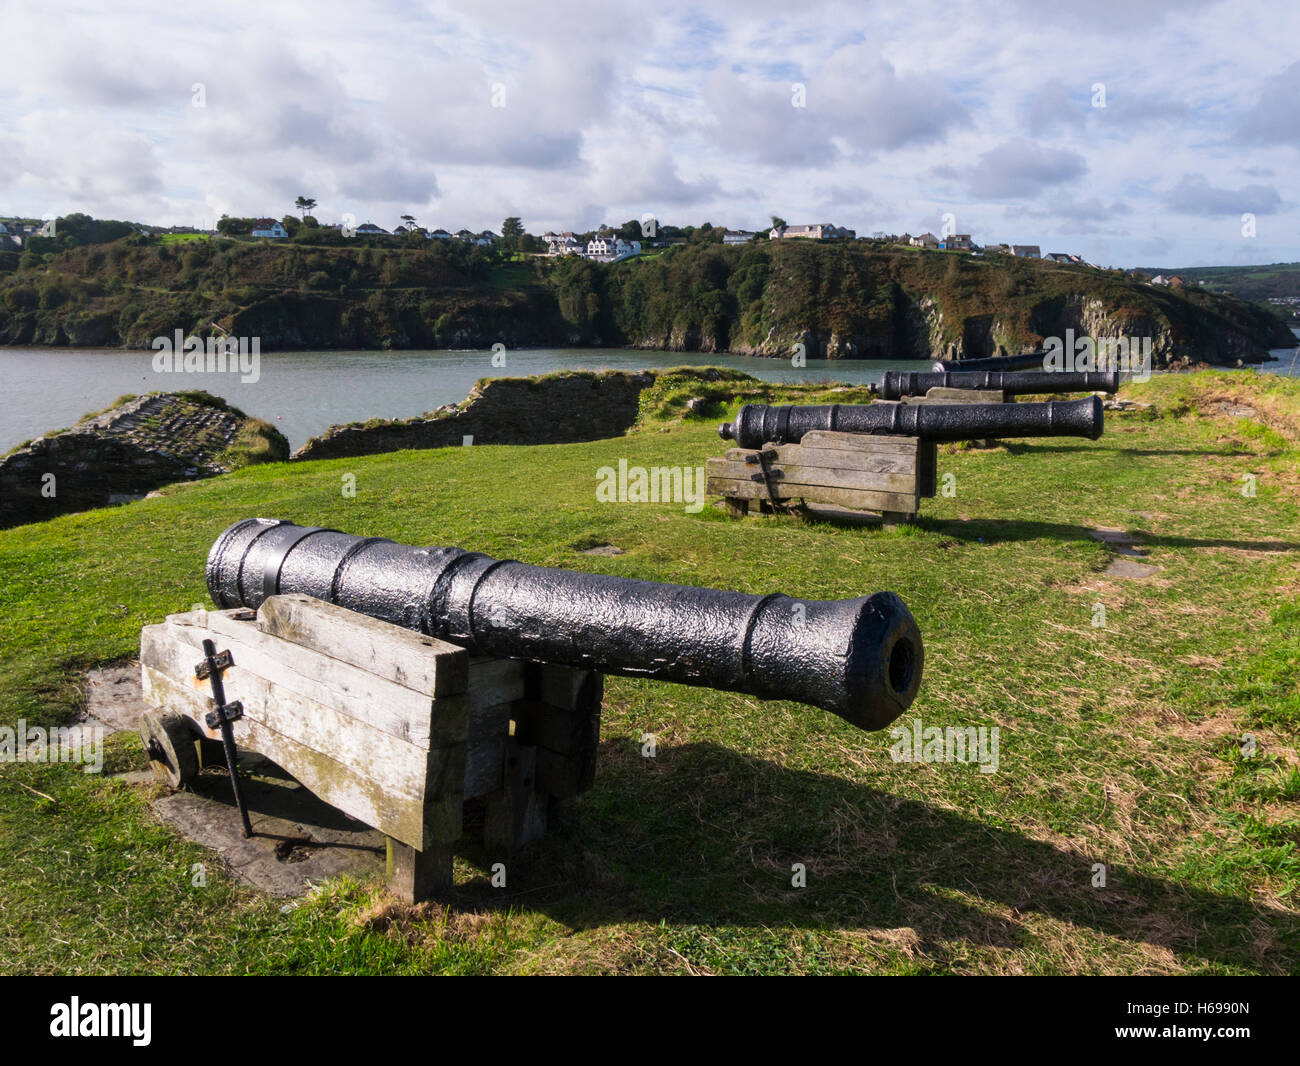 Four 9 pounder guns in the ruins of Fishguard Fort built 1781 to guard prosperous port  Pembrokeshire South Wales - Stock Image